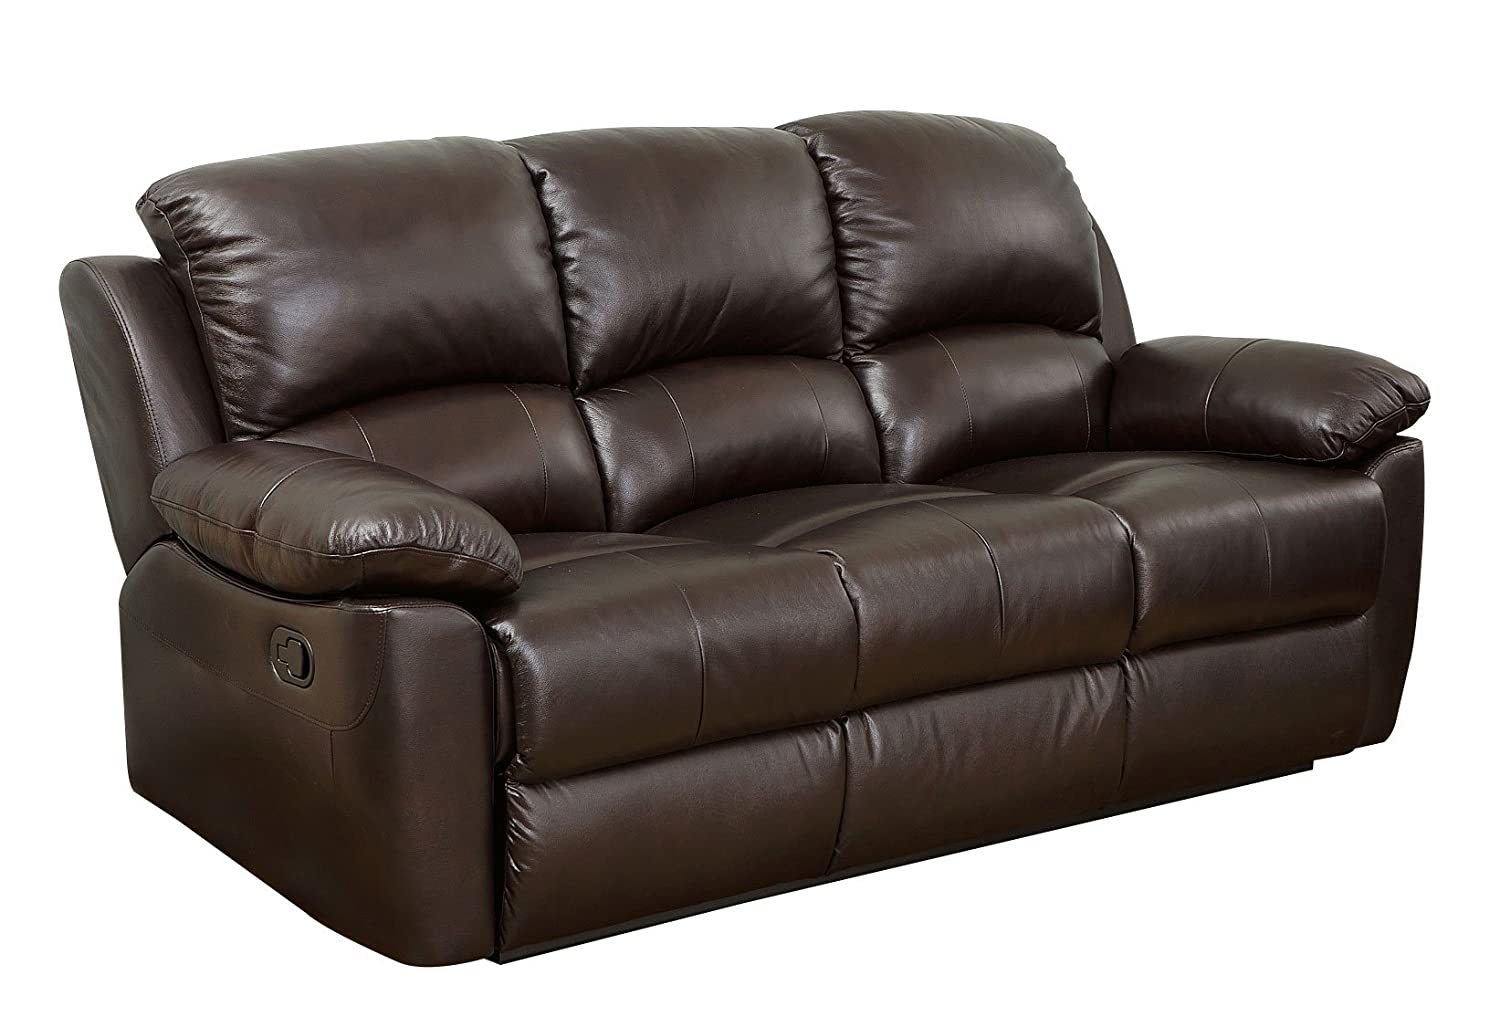 Reclining Leather Sofa What To Look Out For Comfortable  ~ Leather Sofa And Recliner